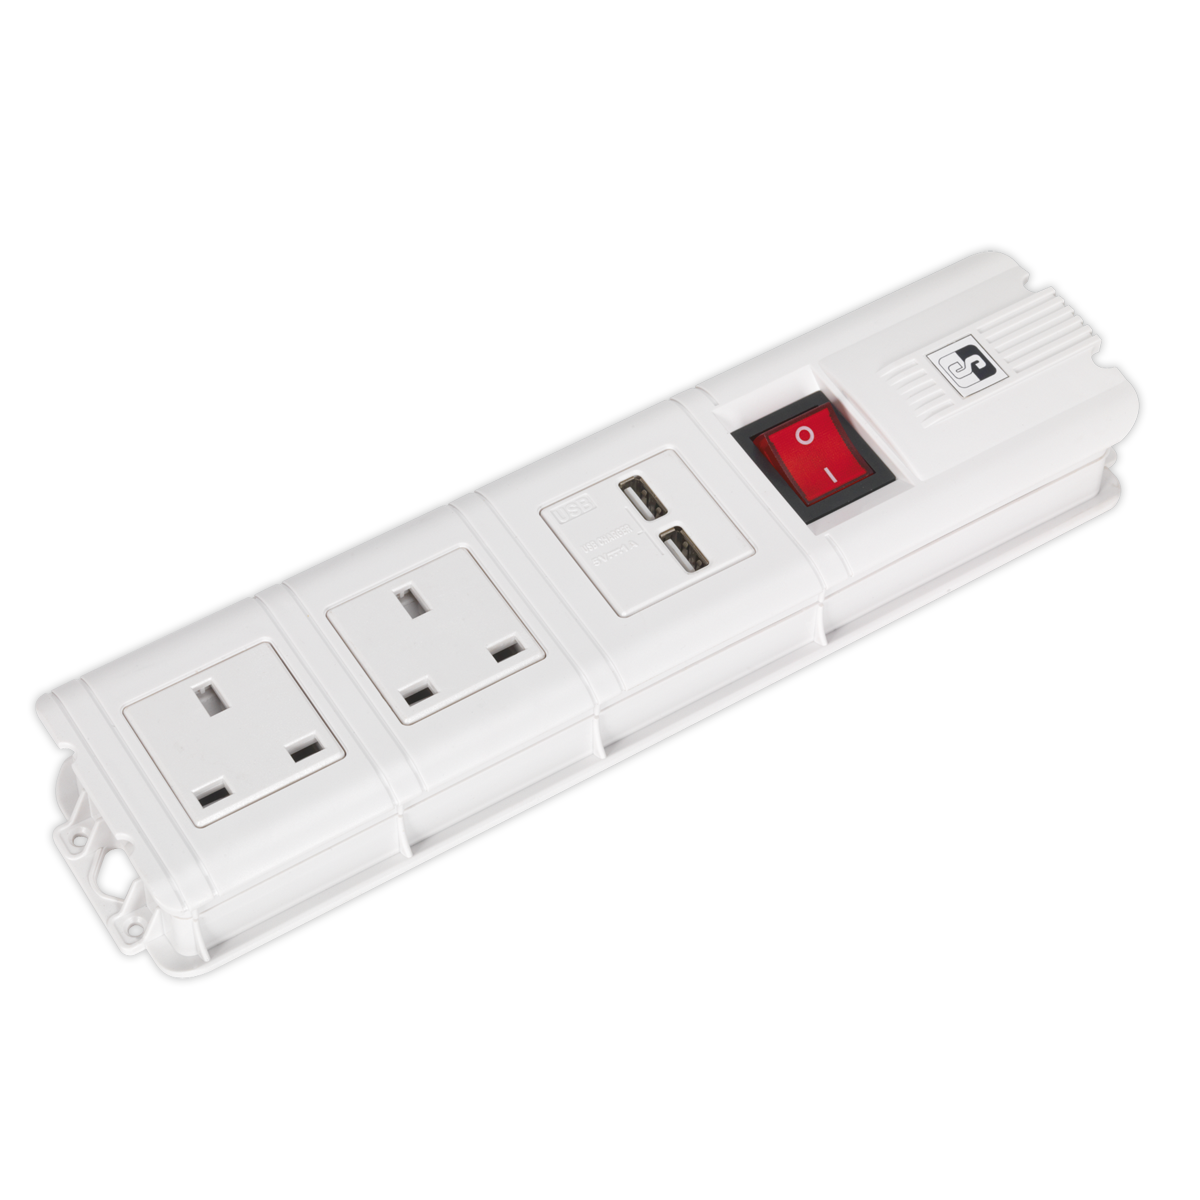 Extension Cable 3mtr 2 x 230V + 2 x USB Sockets - White